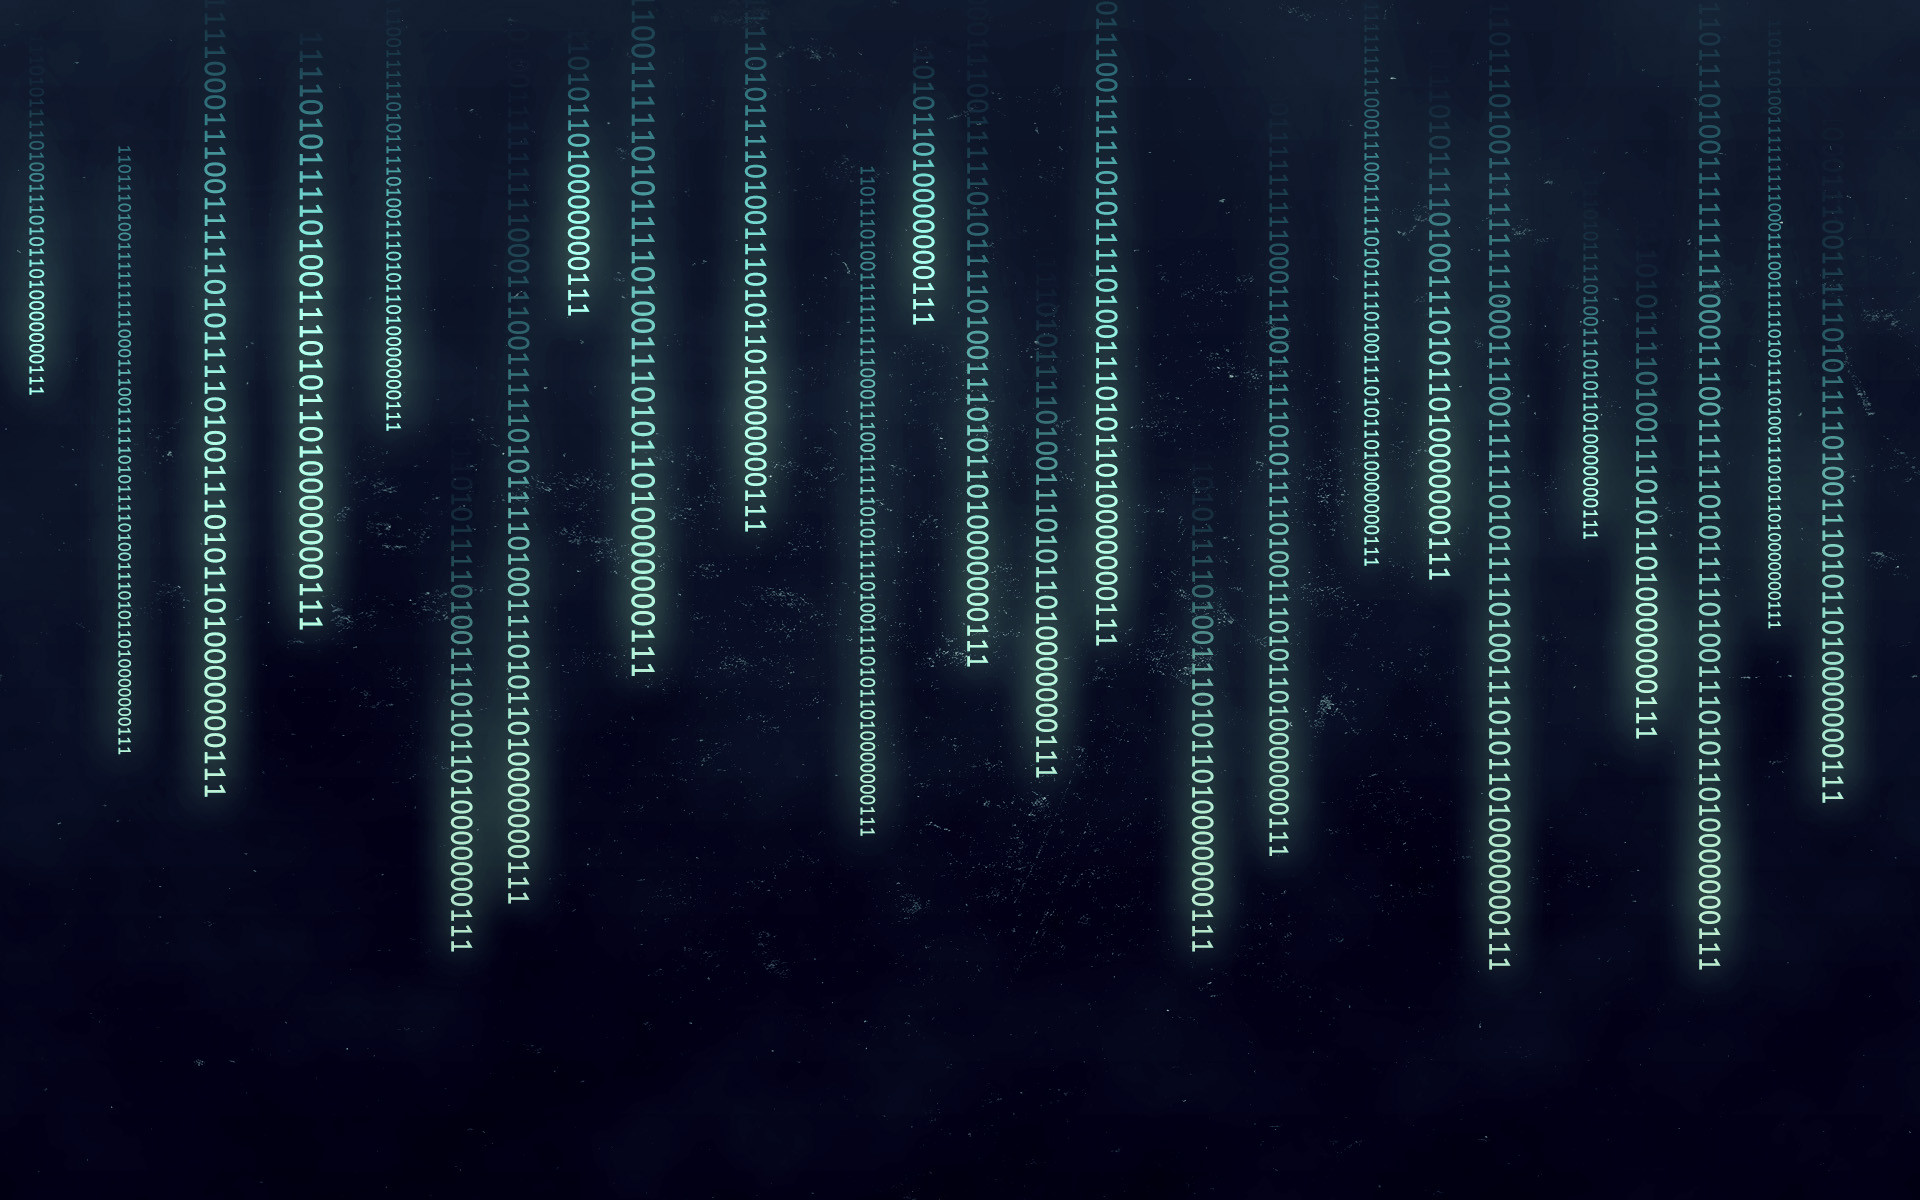 matrix code wallpaper hd 65 images